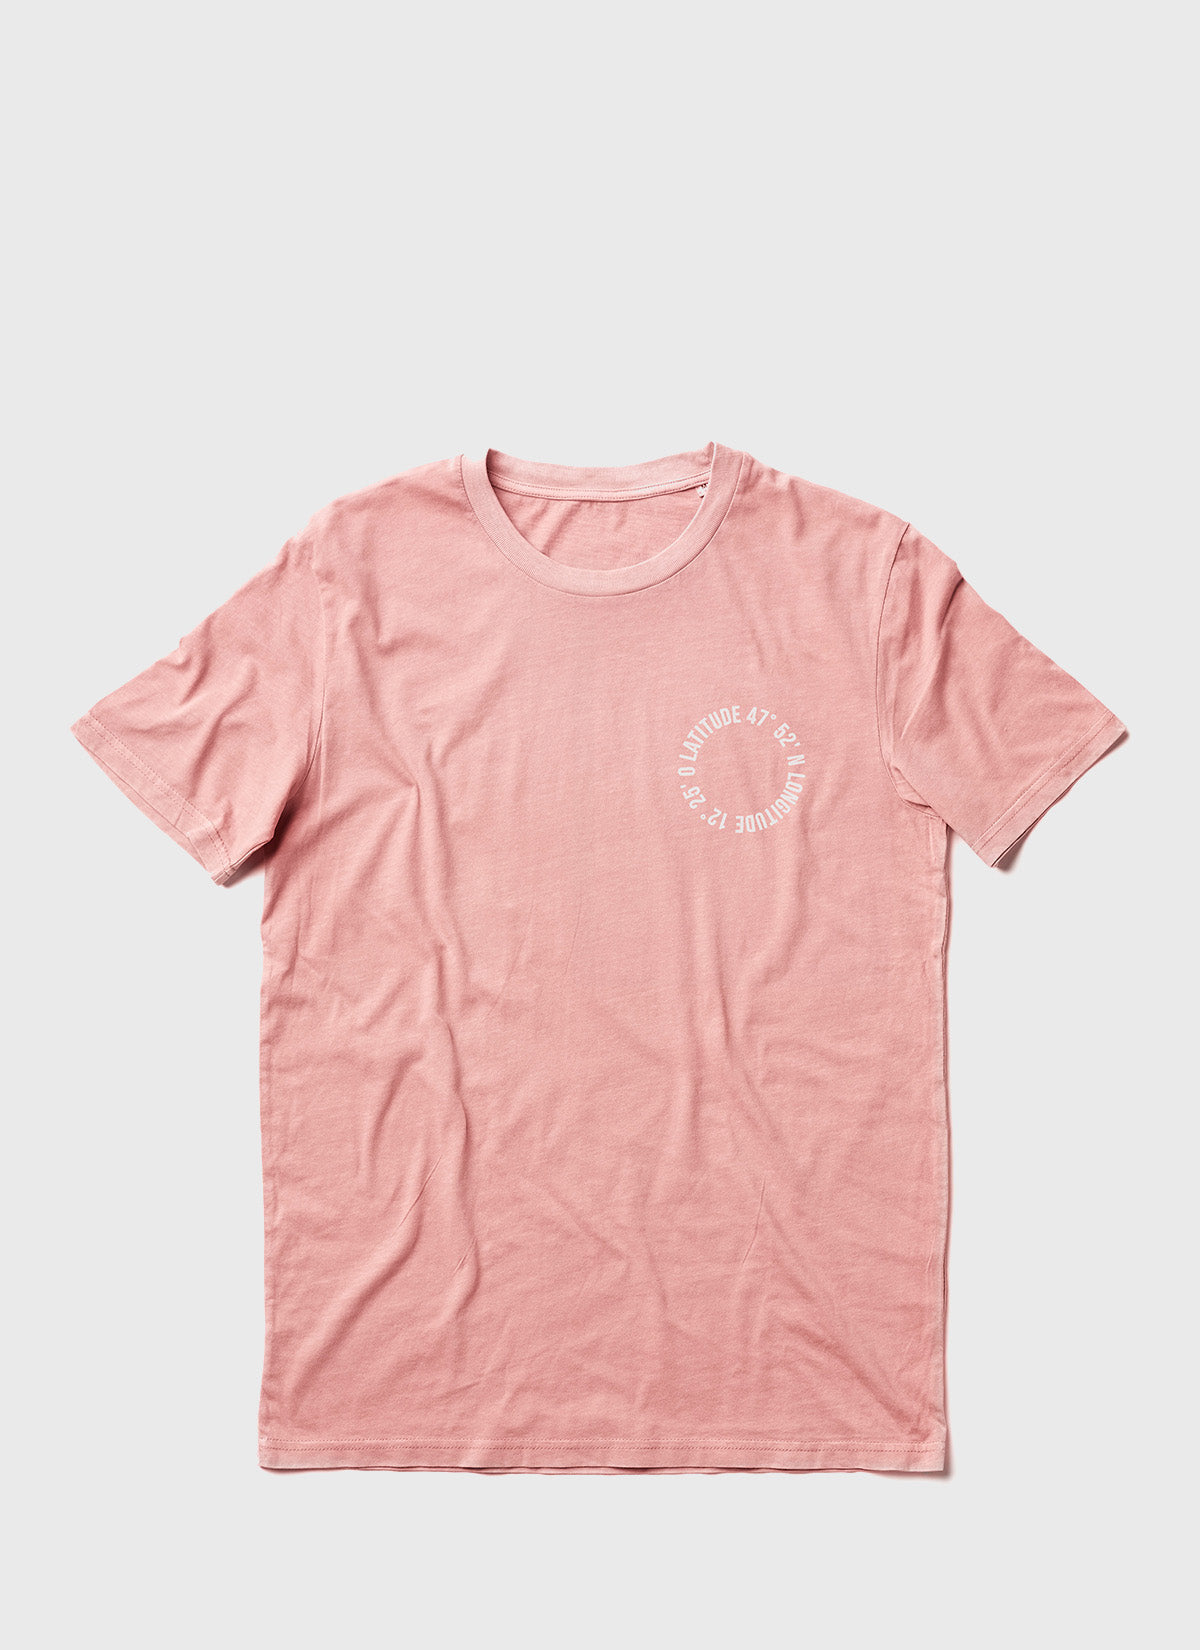 "T-Shirt ""Life is better at the lake"" - vintage rosa - unisex"